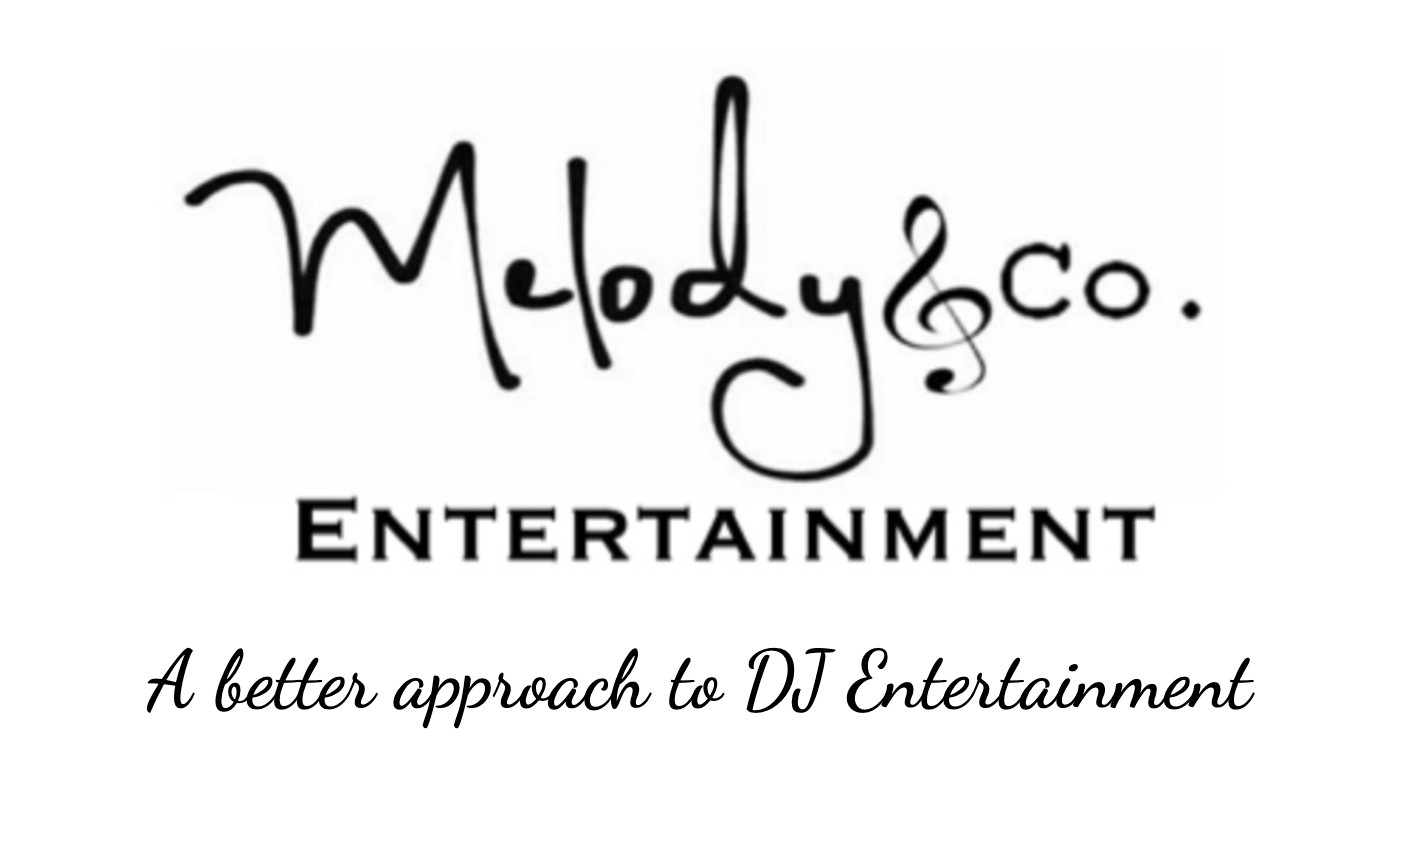 Melody & Co Entertainment